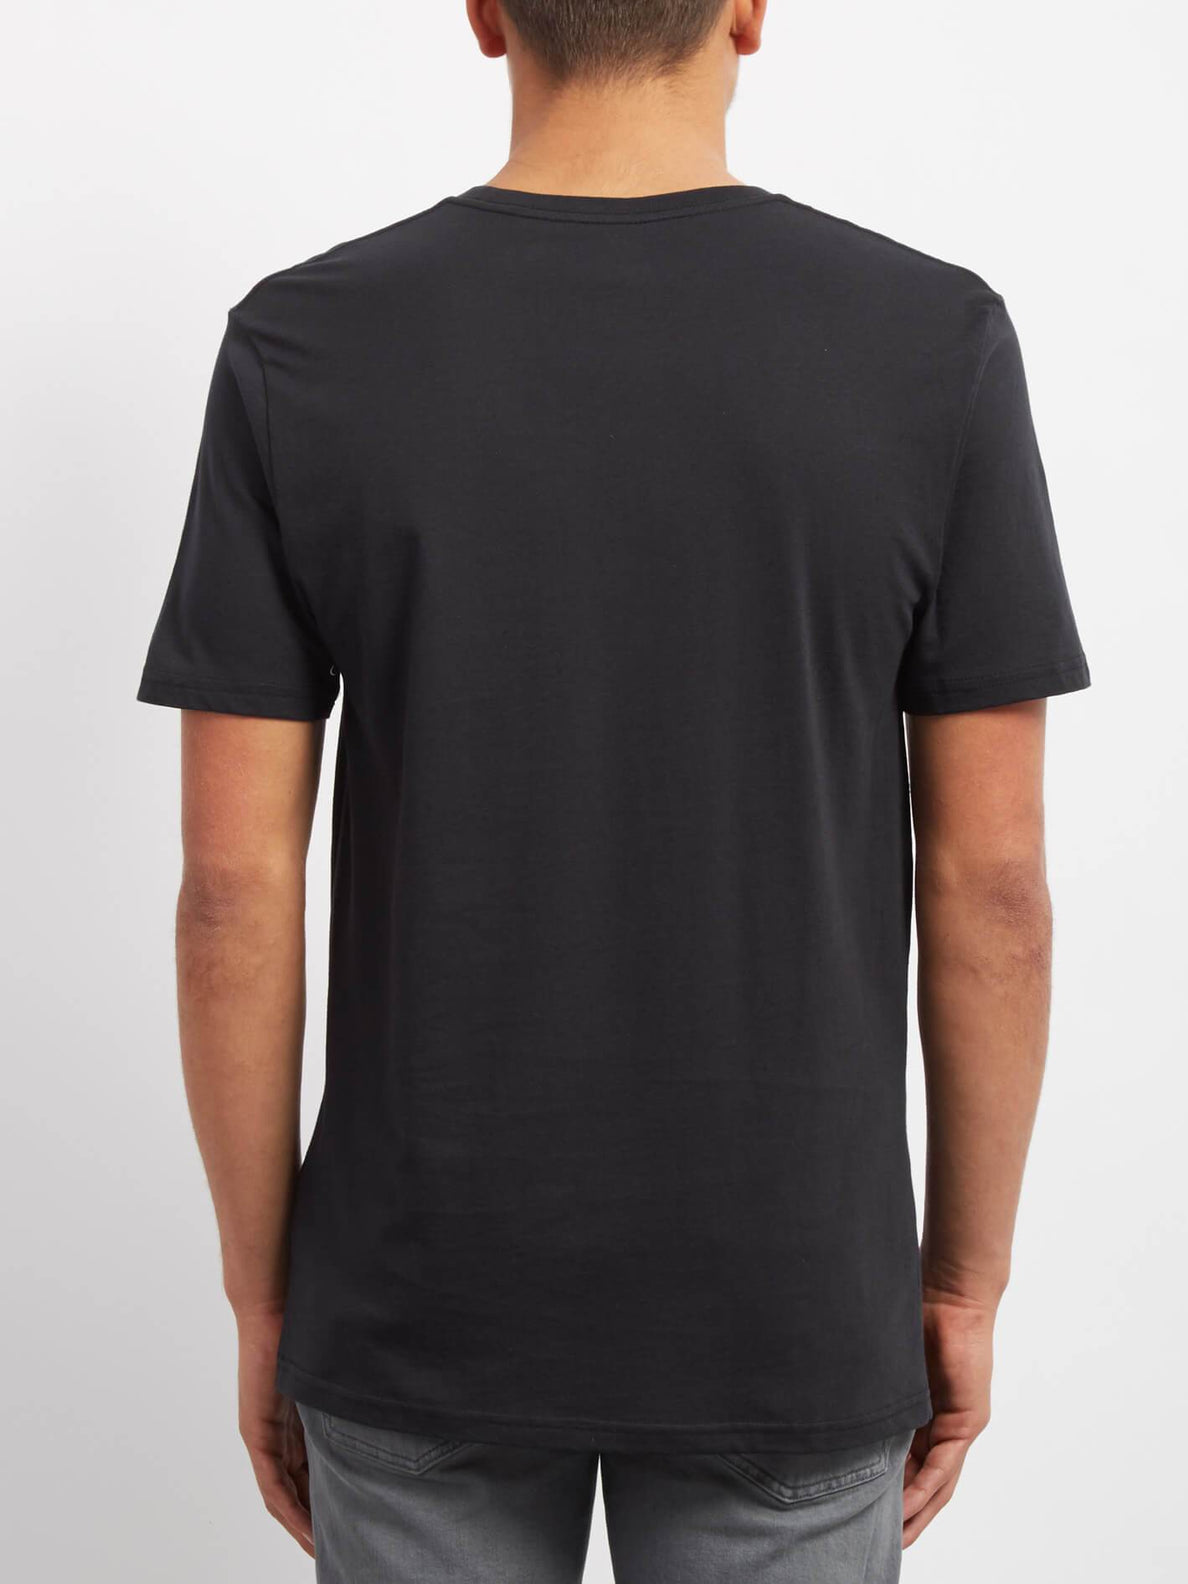 Camiseta Mezo  - Black